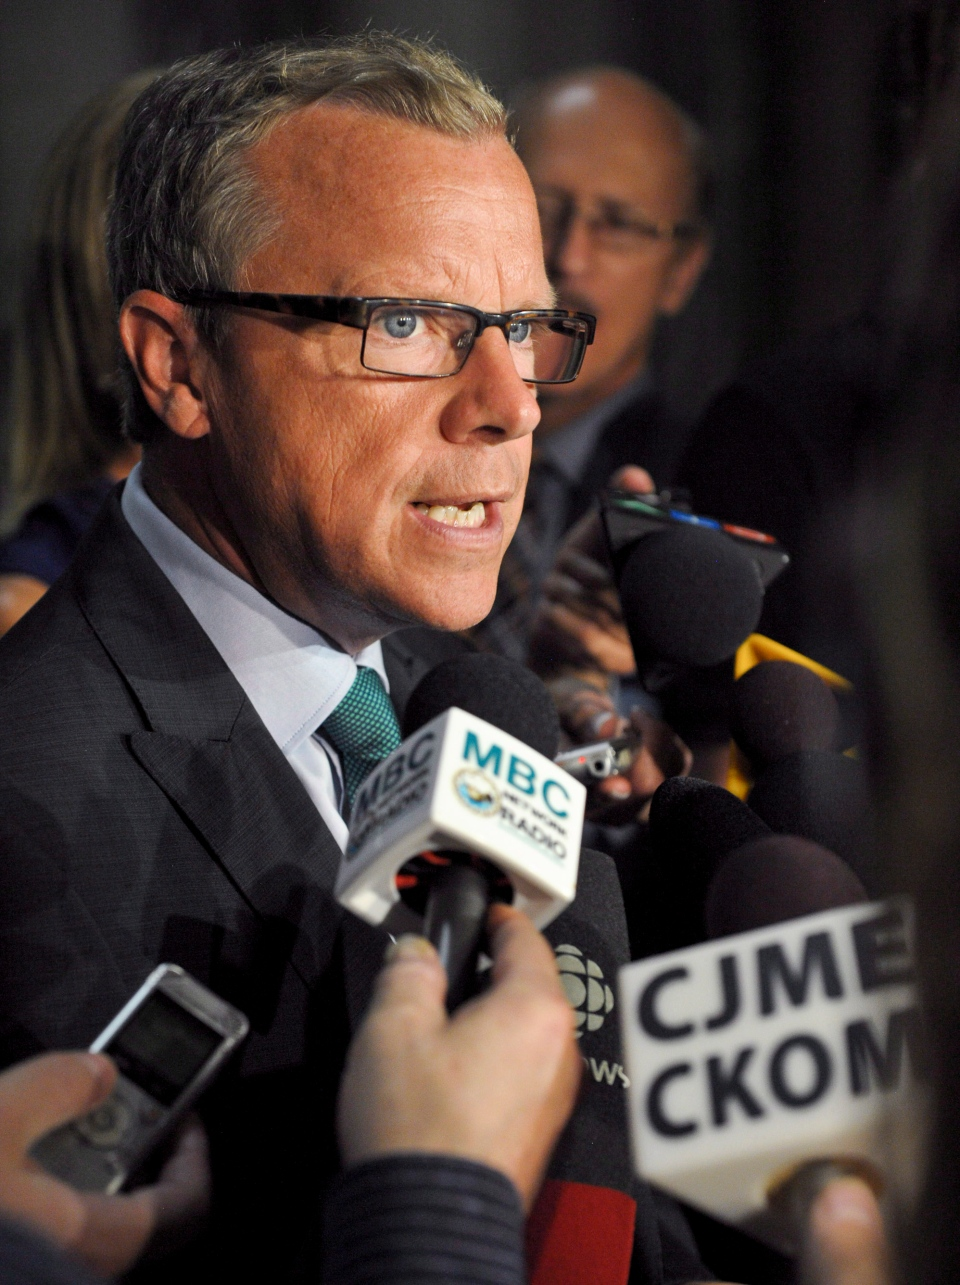 Saskatchewan Premier Brad Wall speaks to reporters in the rotunda of the Saskatchewan Legislative Building on Monday, Sept. 9, 2013 in Regina. THE CANADIAN PRESS/Michael Bell